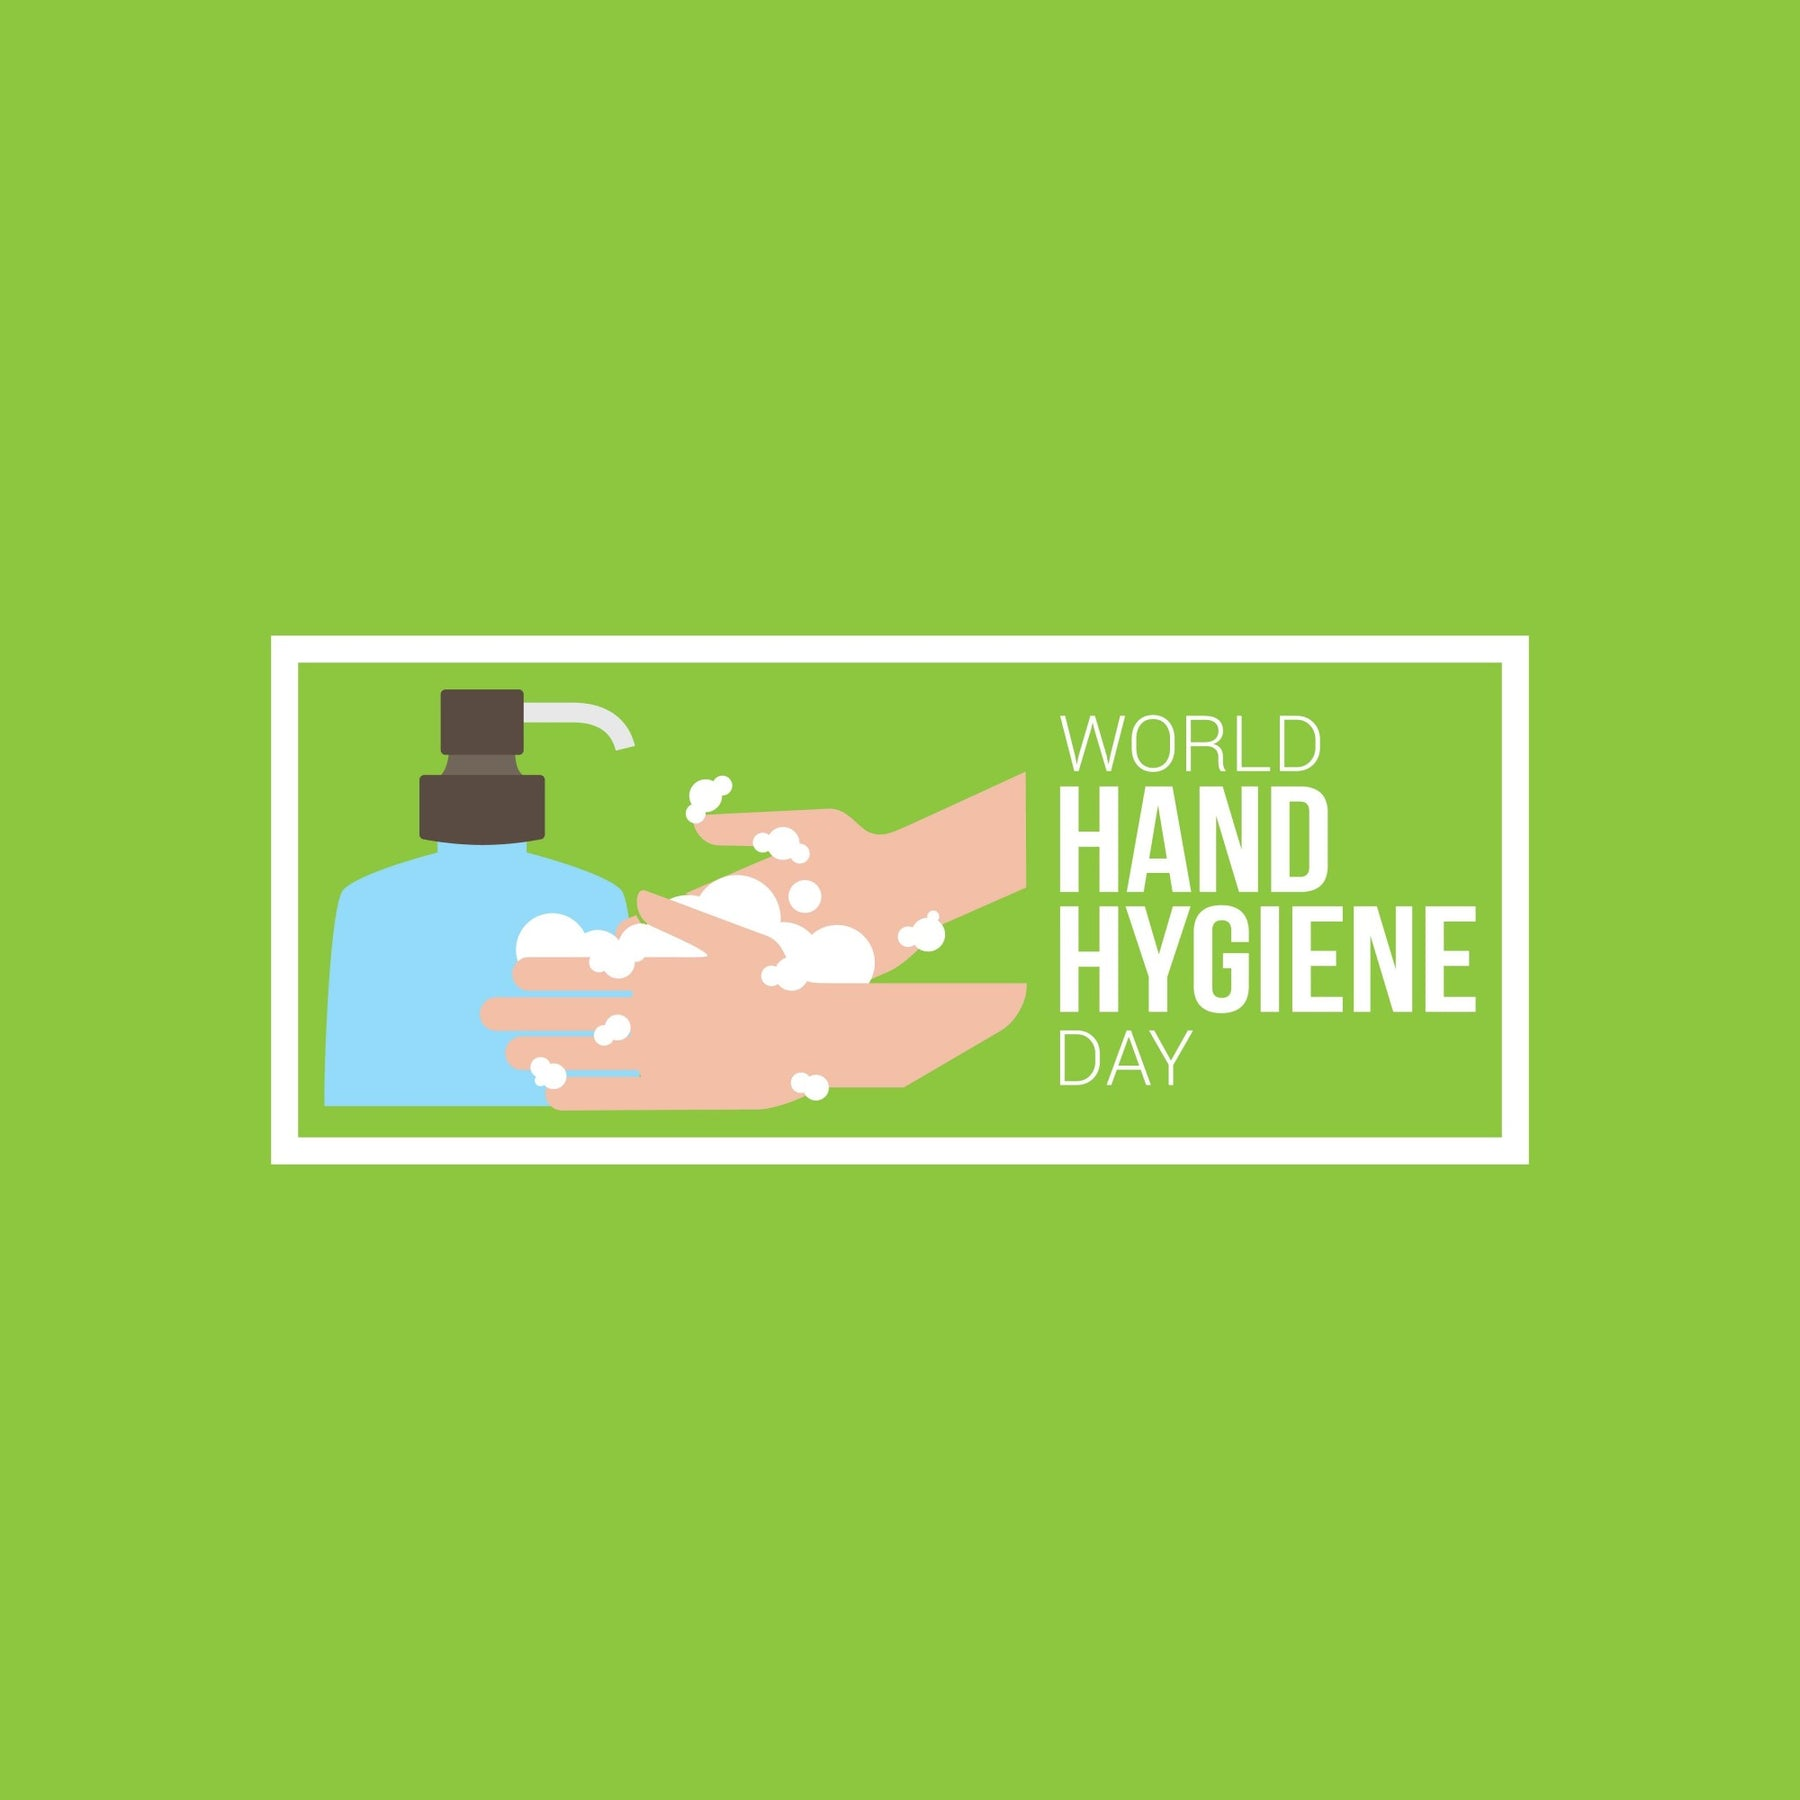 World Hand Hygiene Day: Clean Hands Save Lives